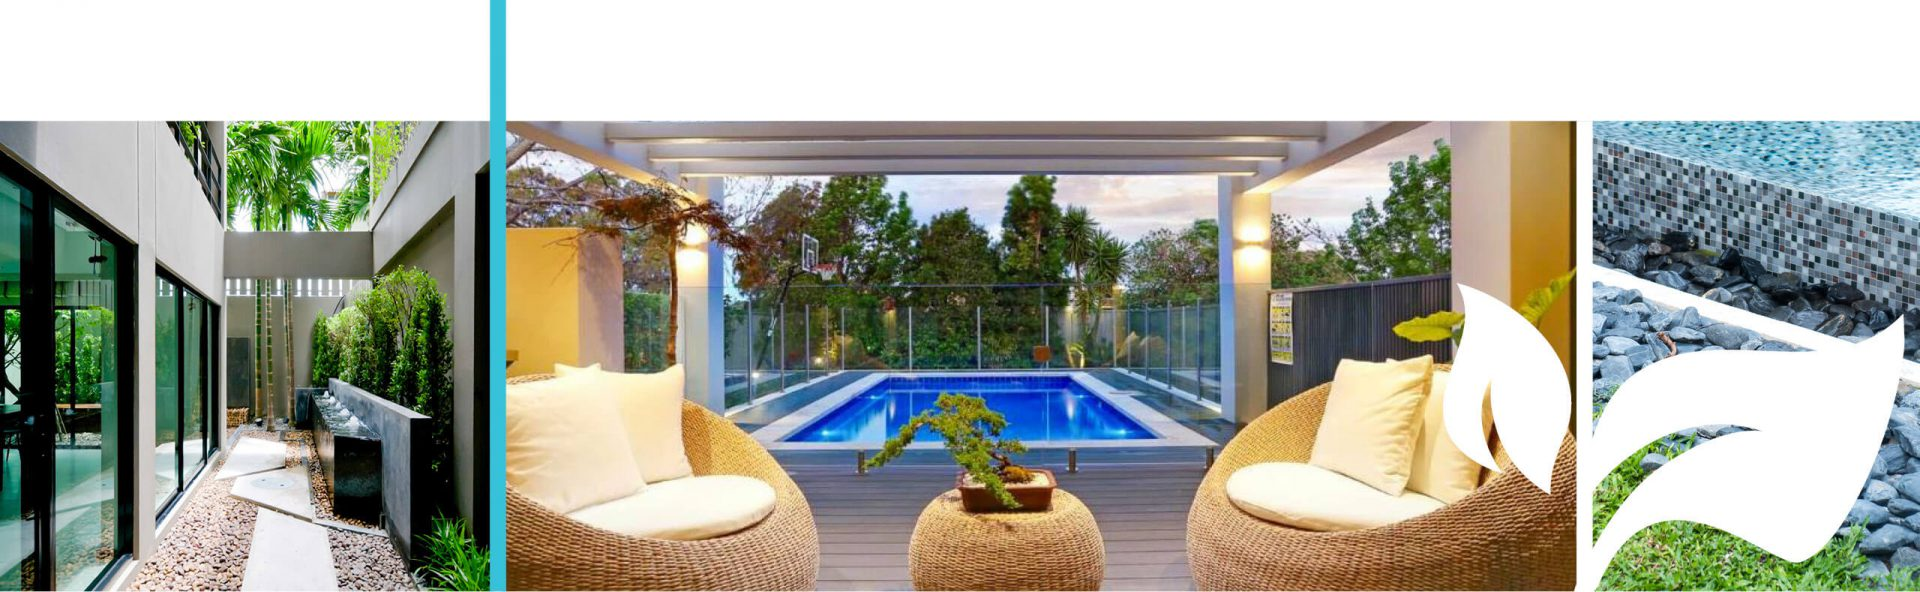 Pool surrounded by decking beside a pergola at dusk